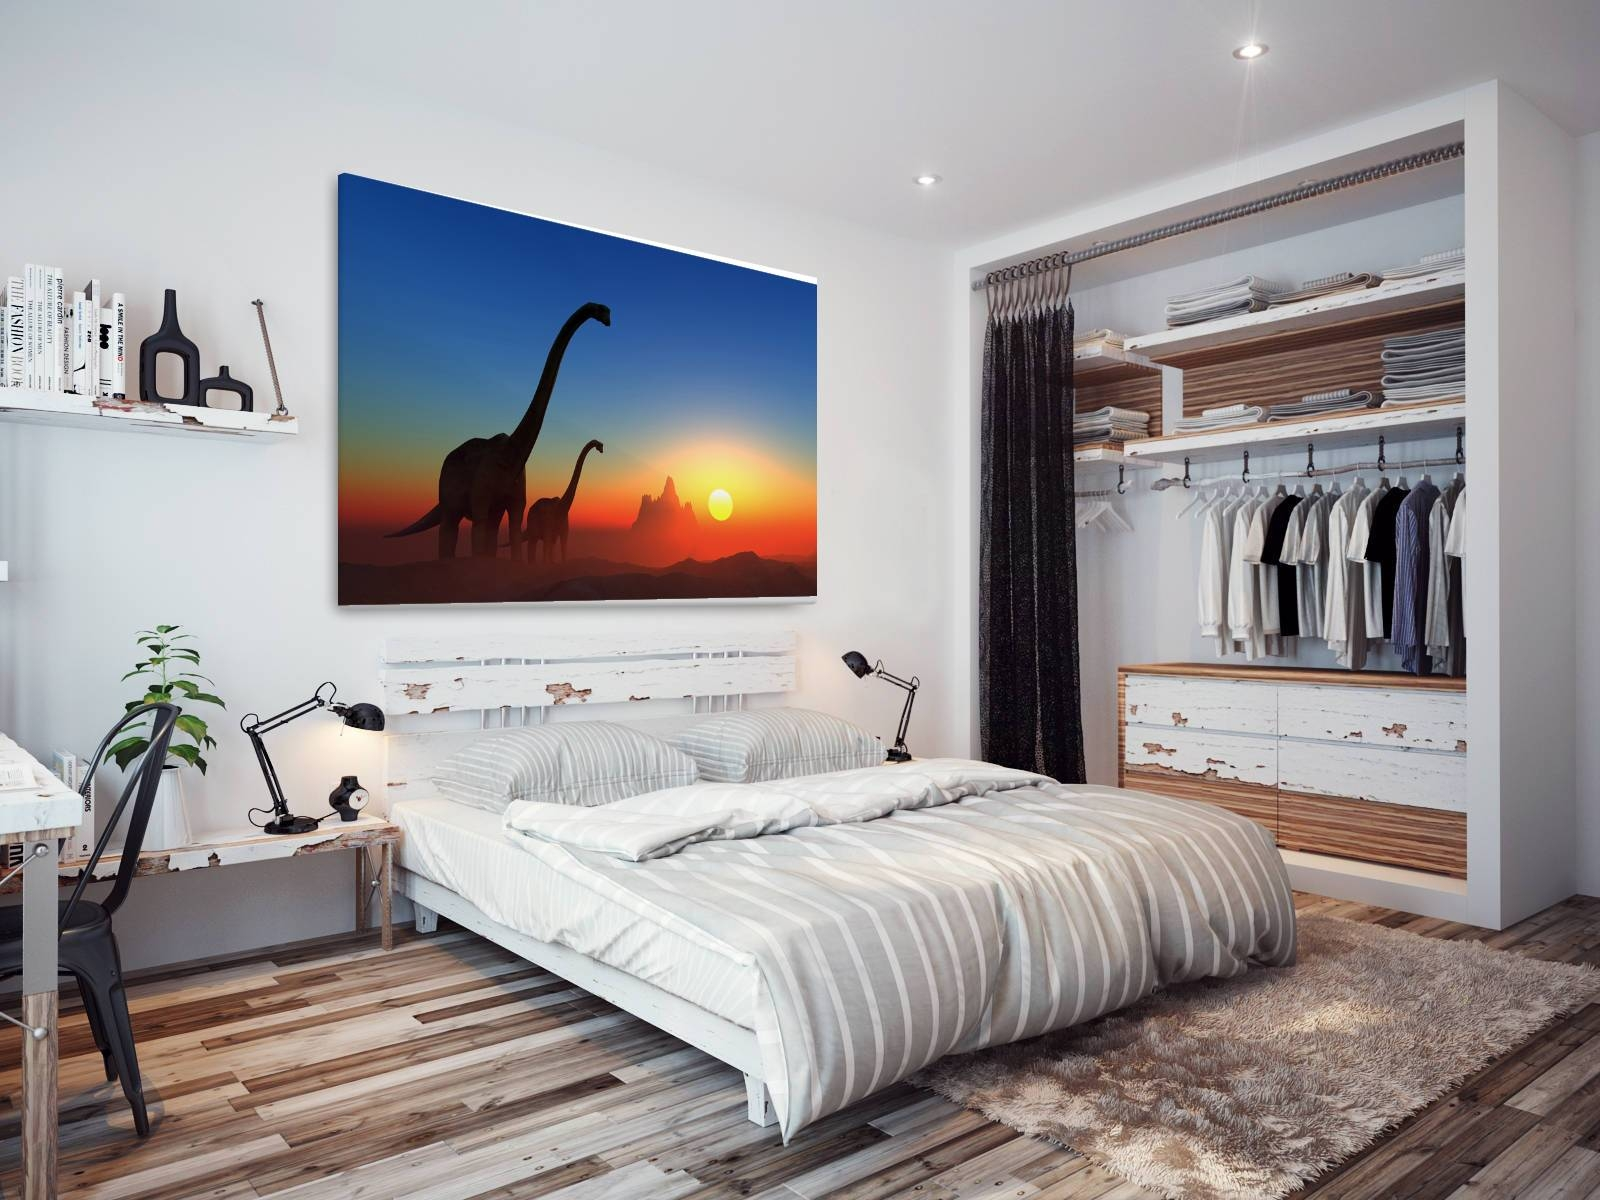 A210 Orange Blue Dinosaur Sunset Animal Canvas Wall Art Framed Within Current Animal Canvas Wall Art (View 7 of 20)